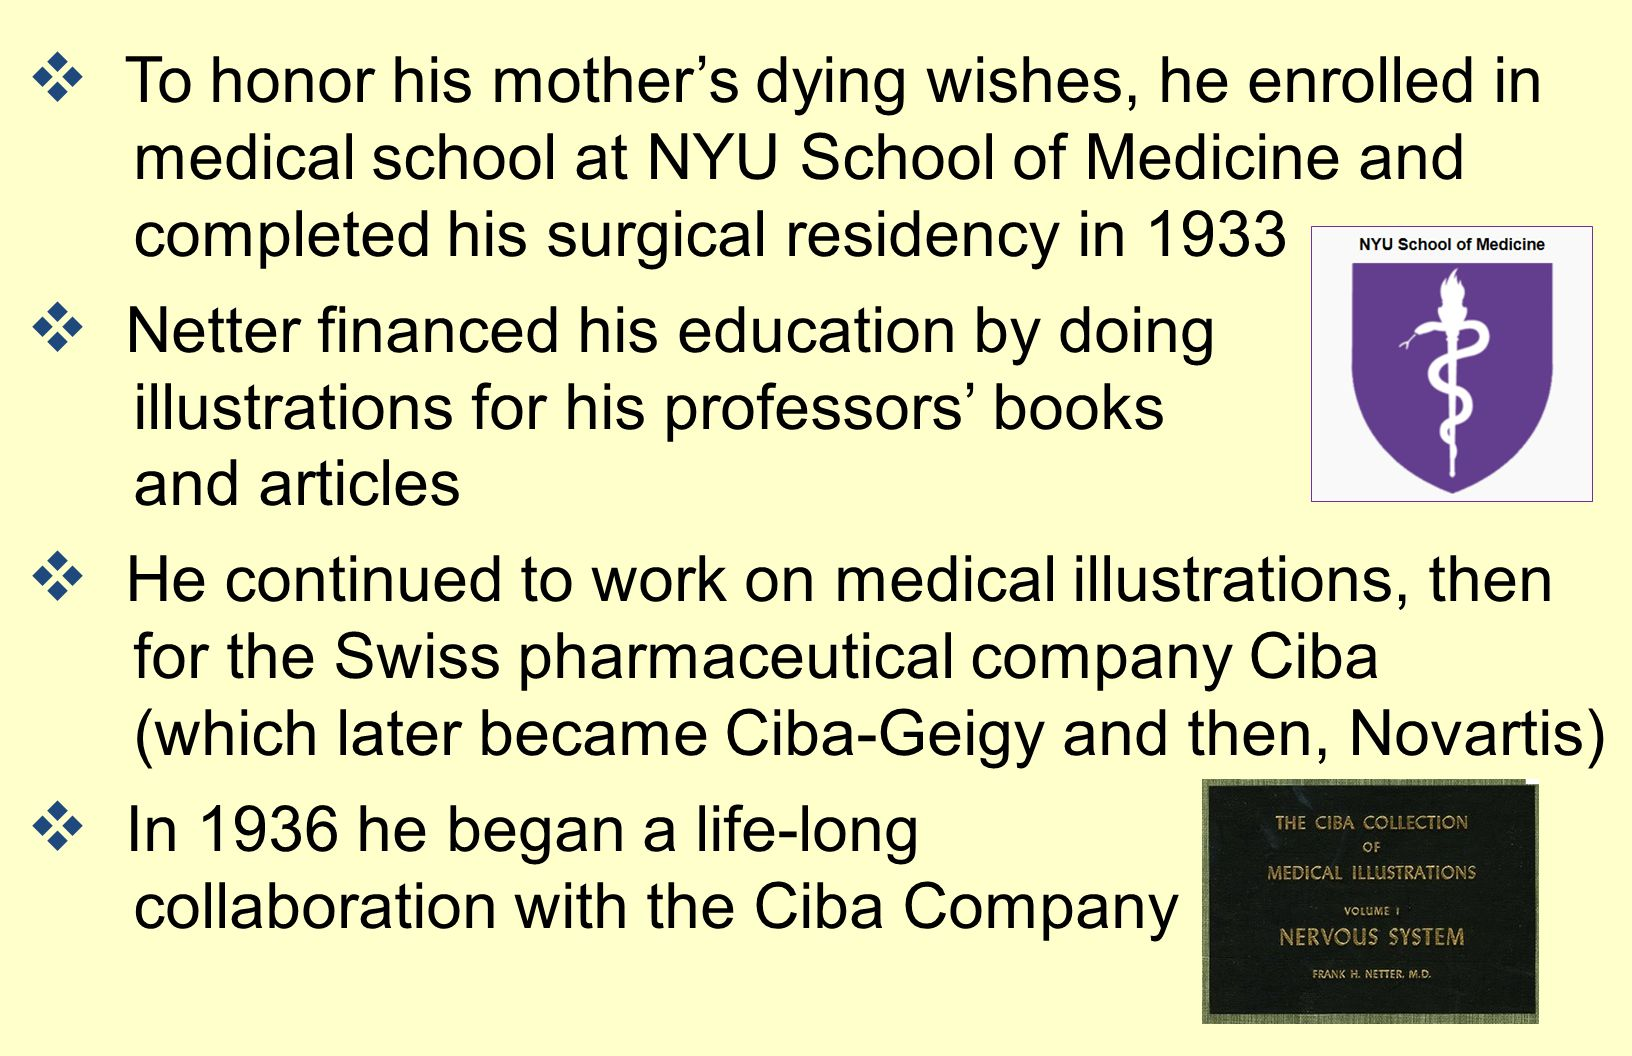 To honor his mother's dying wishes, he enrolled in